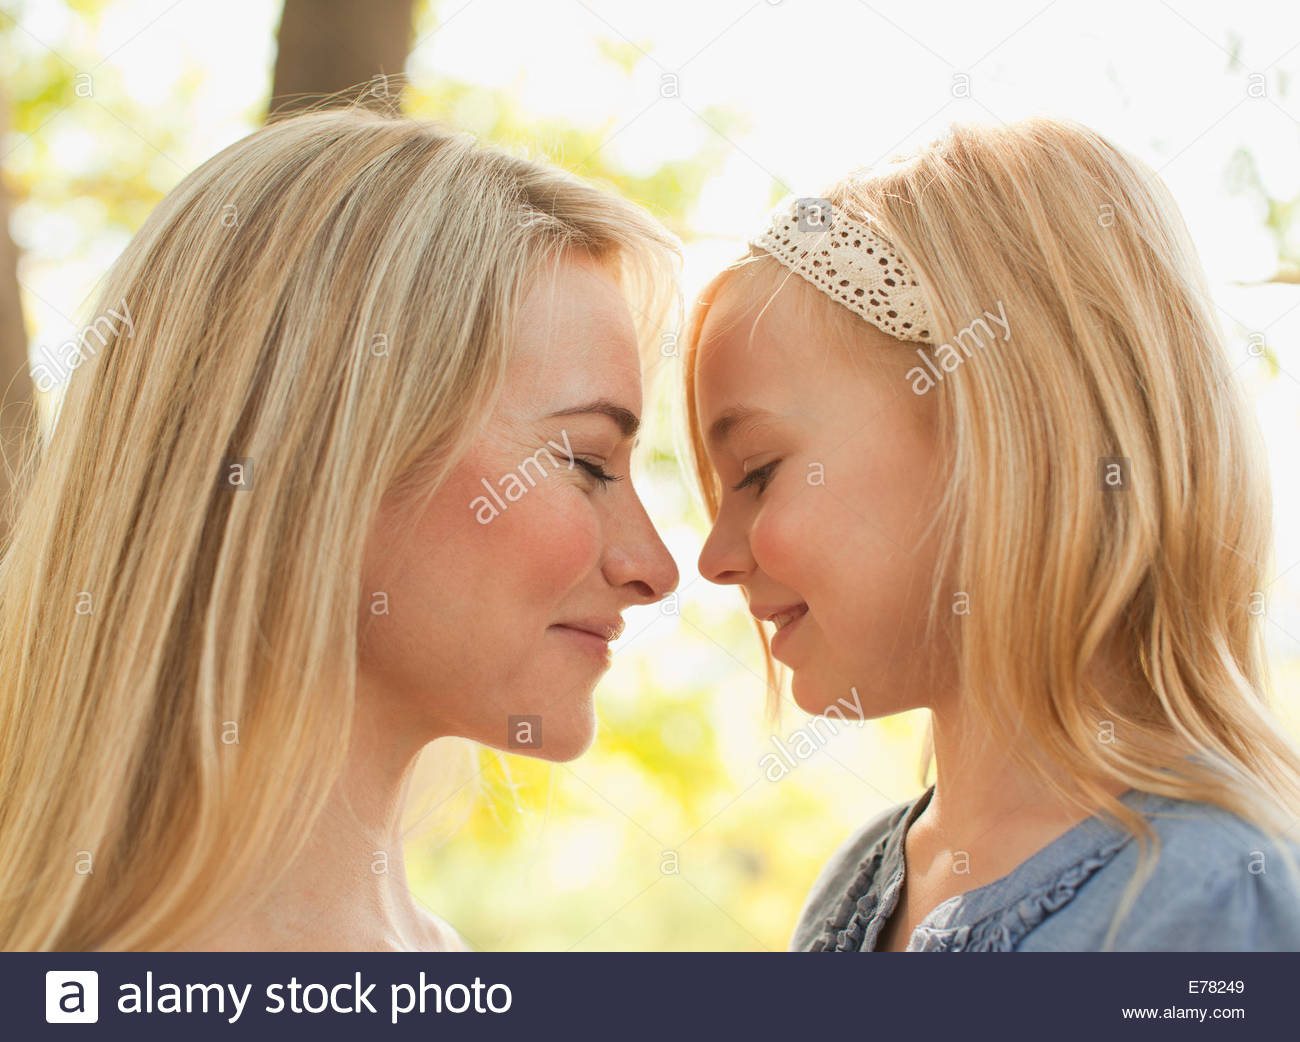 Mother and daughter laughing together - Stock Image